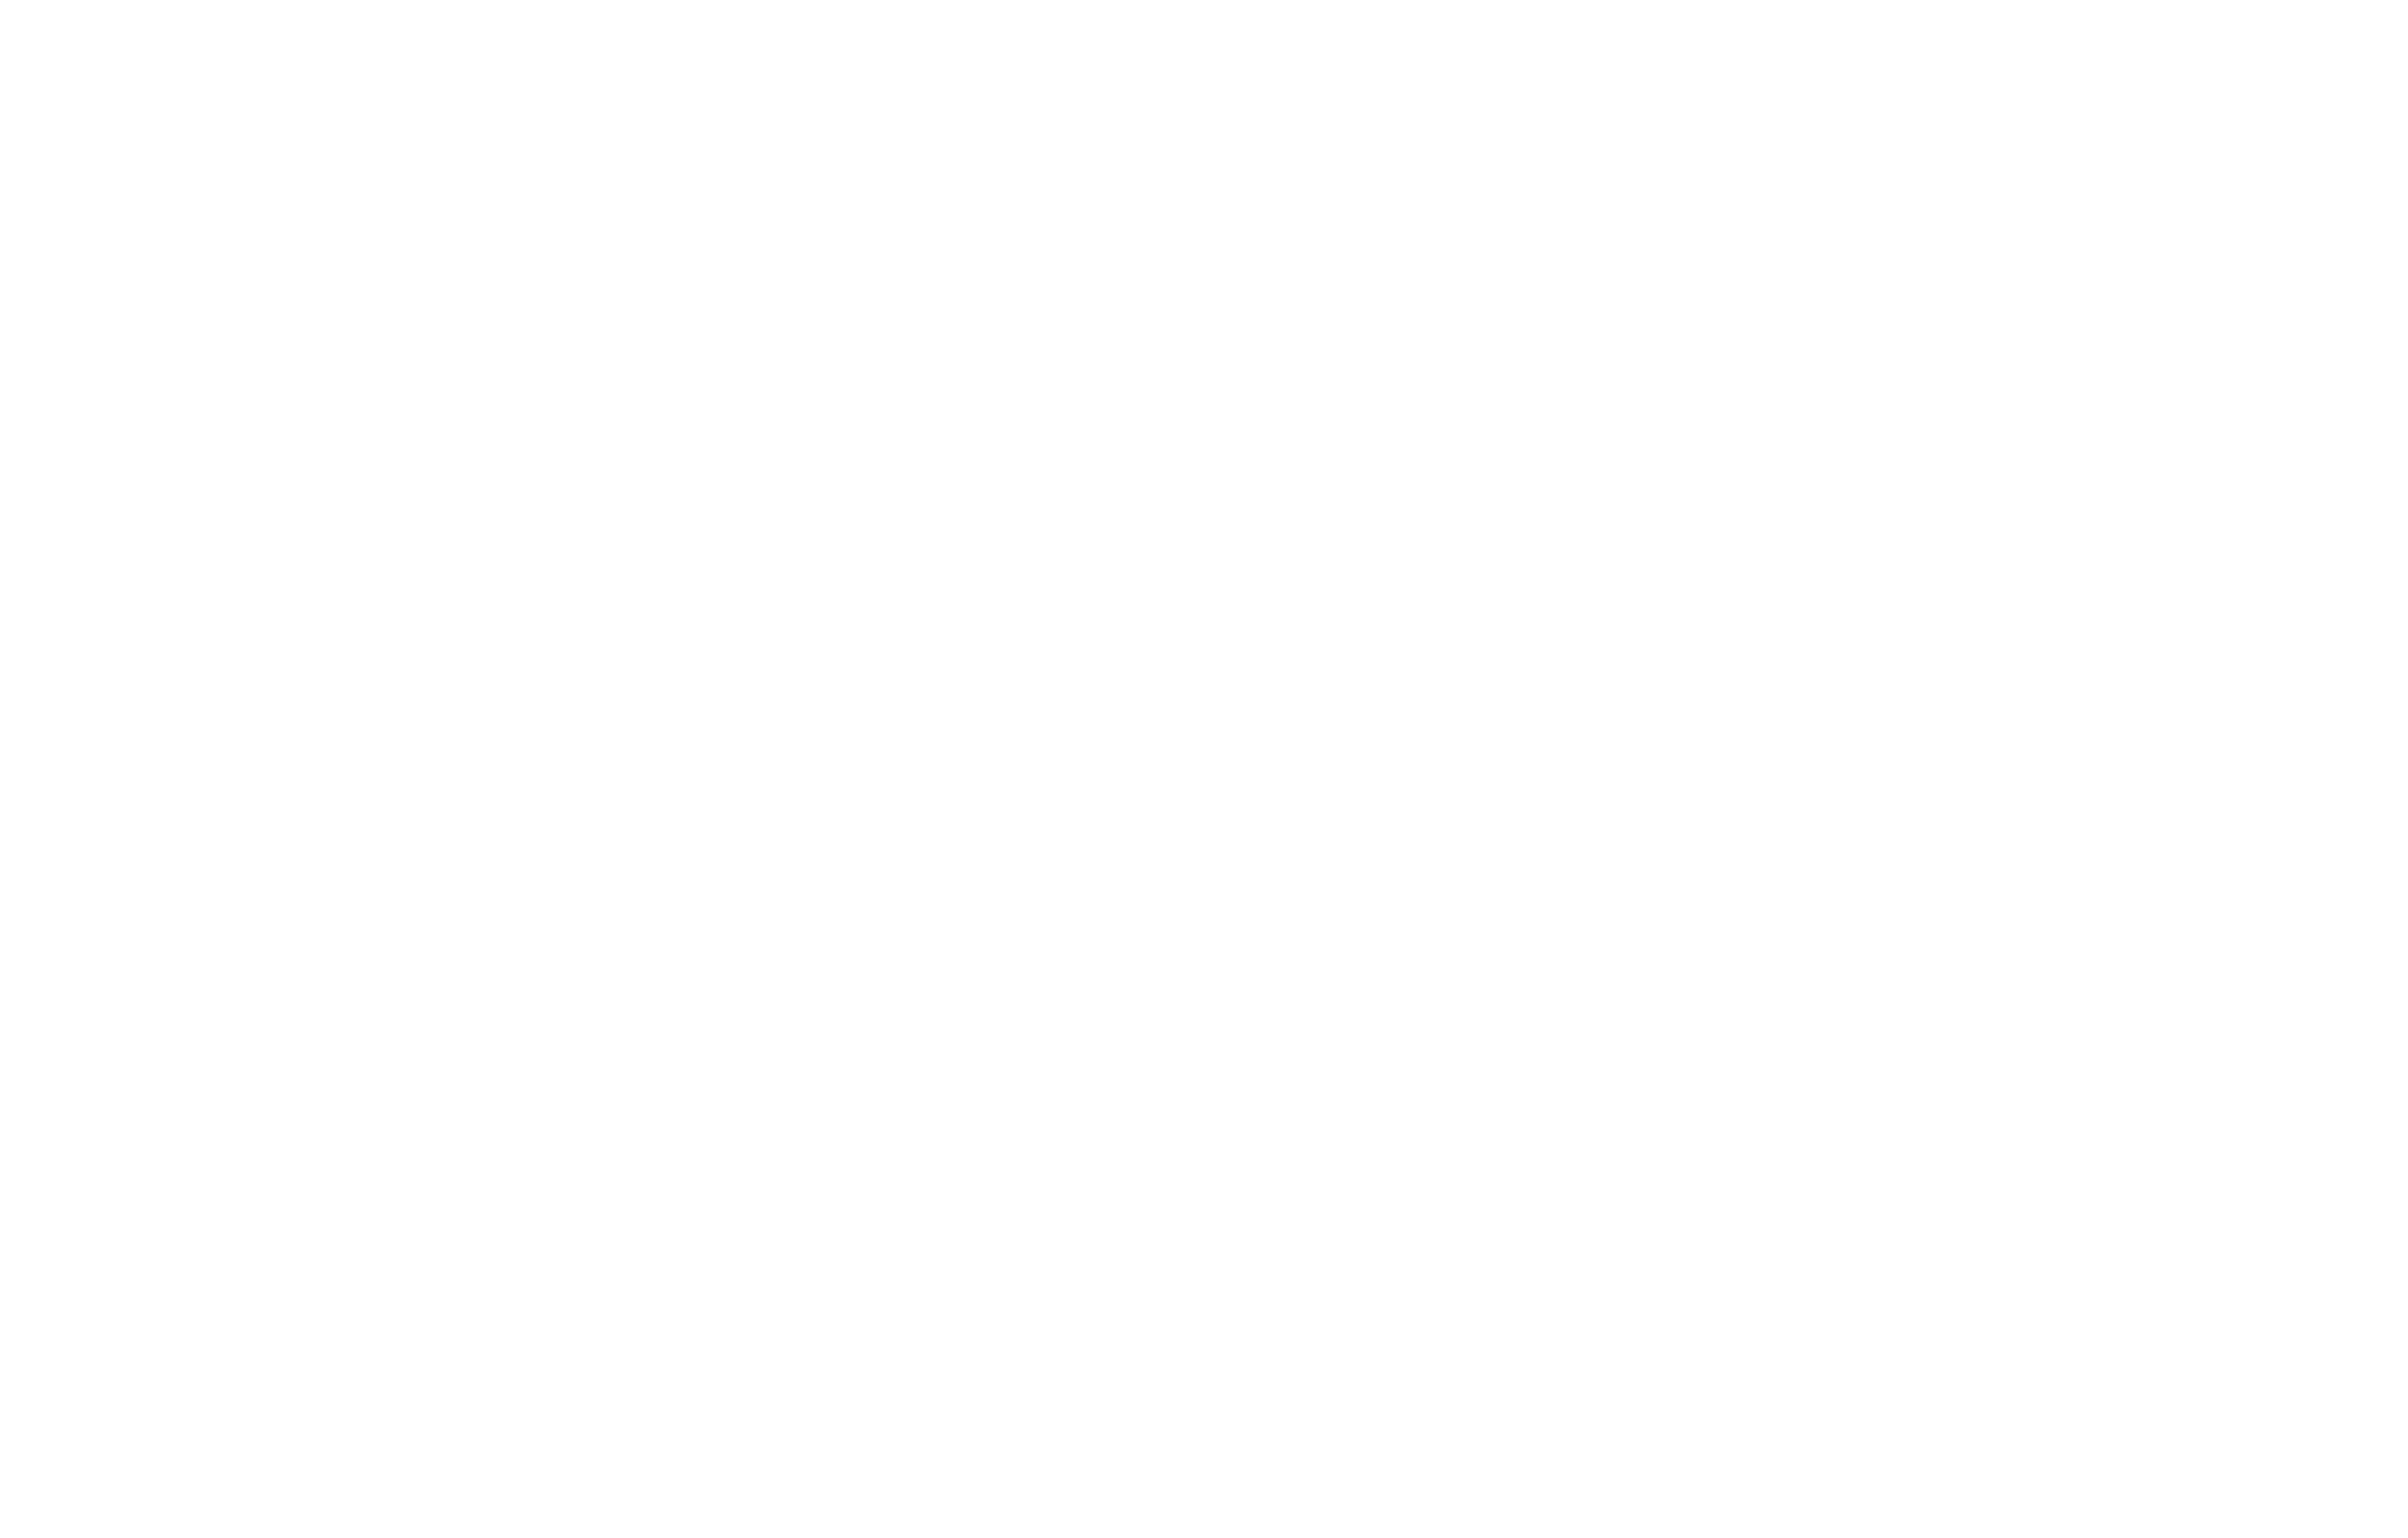 HoMA-2019-SFF-laurel-officialselection.png